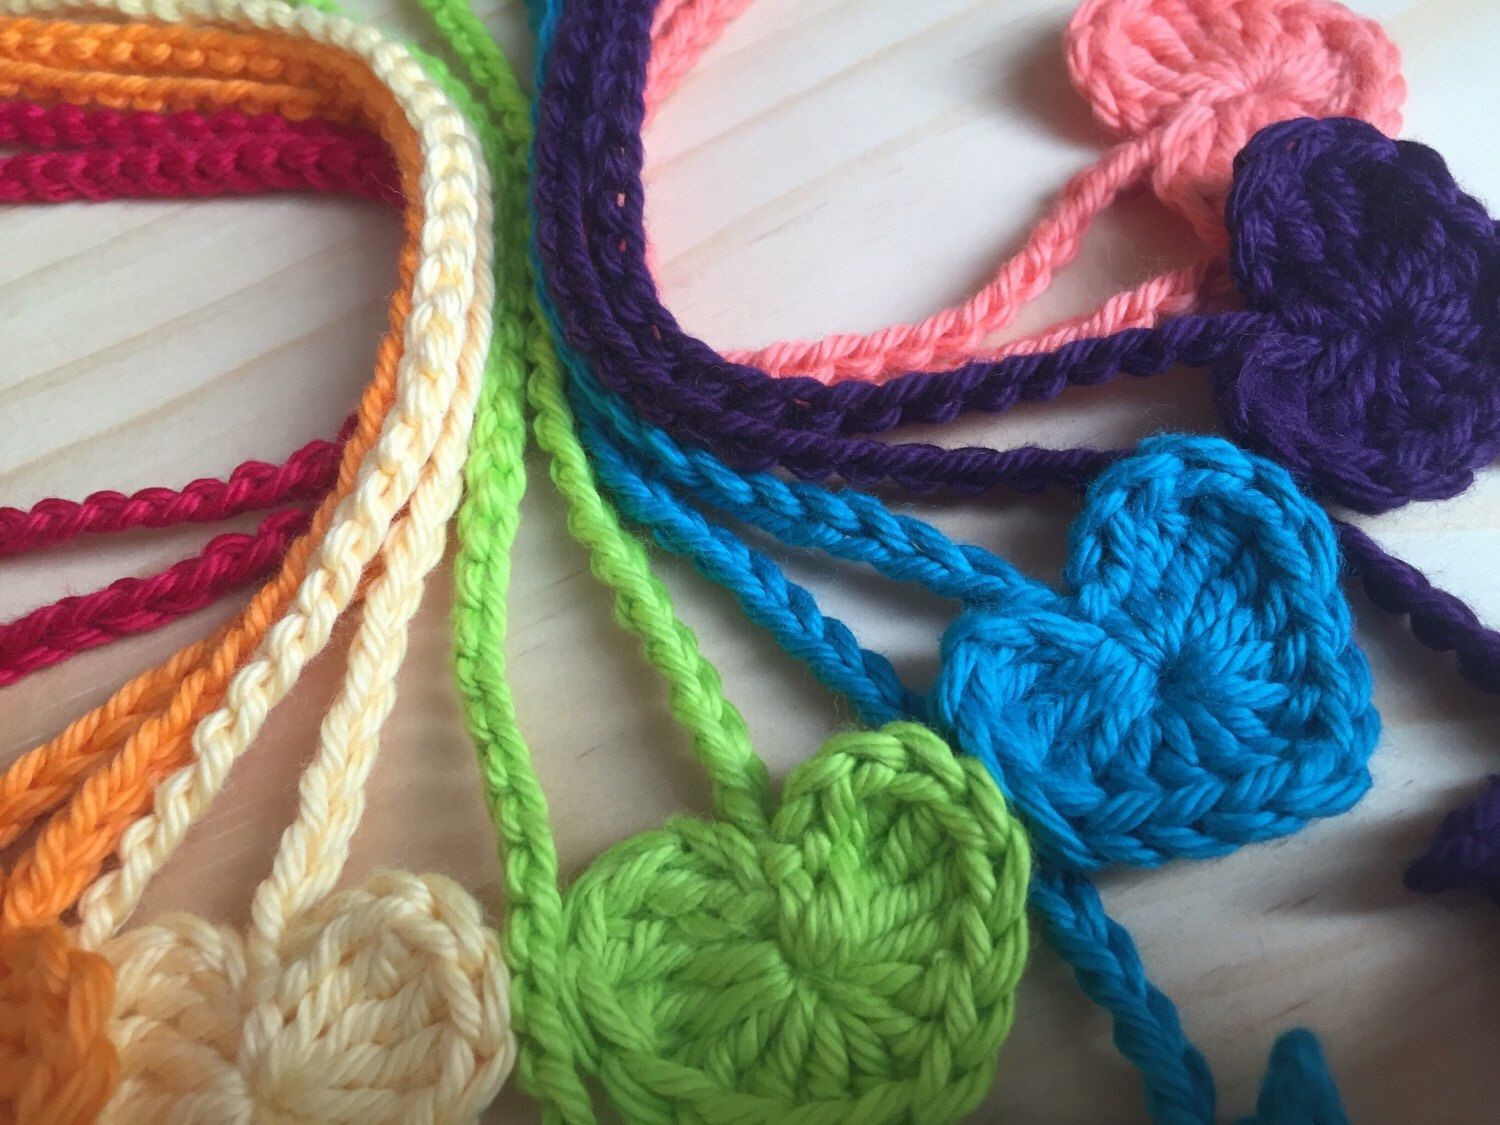 Crochet Cording Awesome Heart Umbilical Cord Tie Umbilical Cord Tie Crochet Of Marvelous 43 Images Crochet Cording